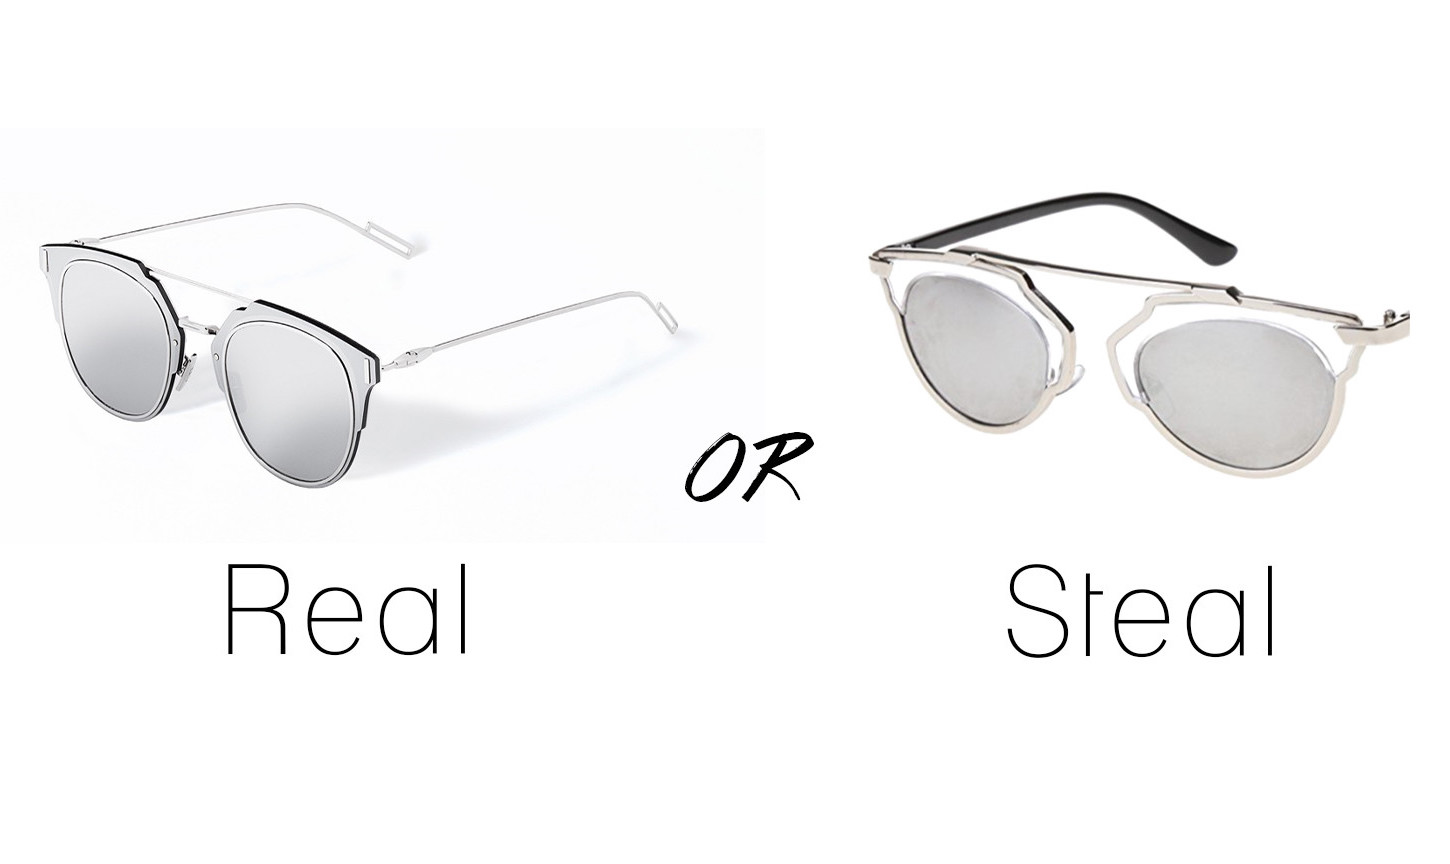 Real_or_Steal_dior_sunglass_dupe_Look_alike